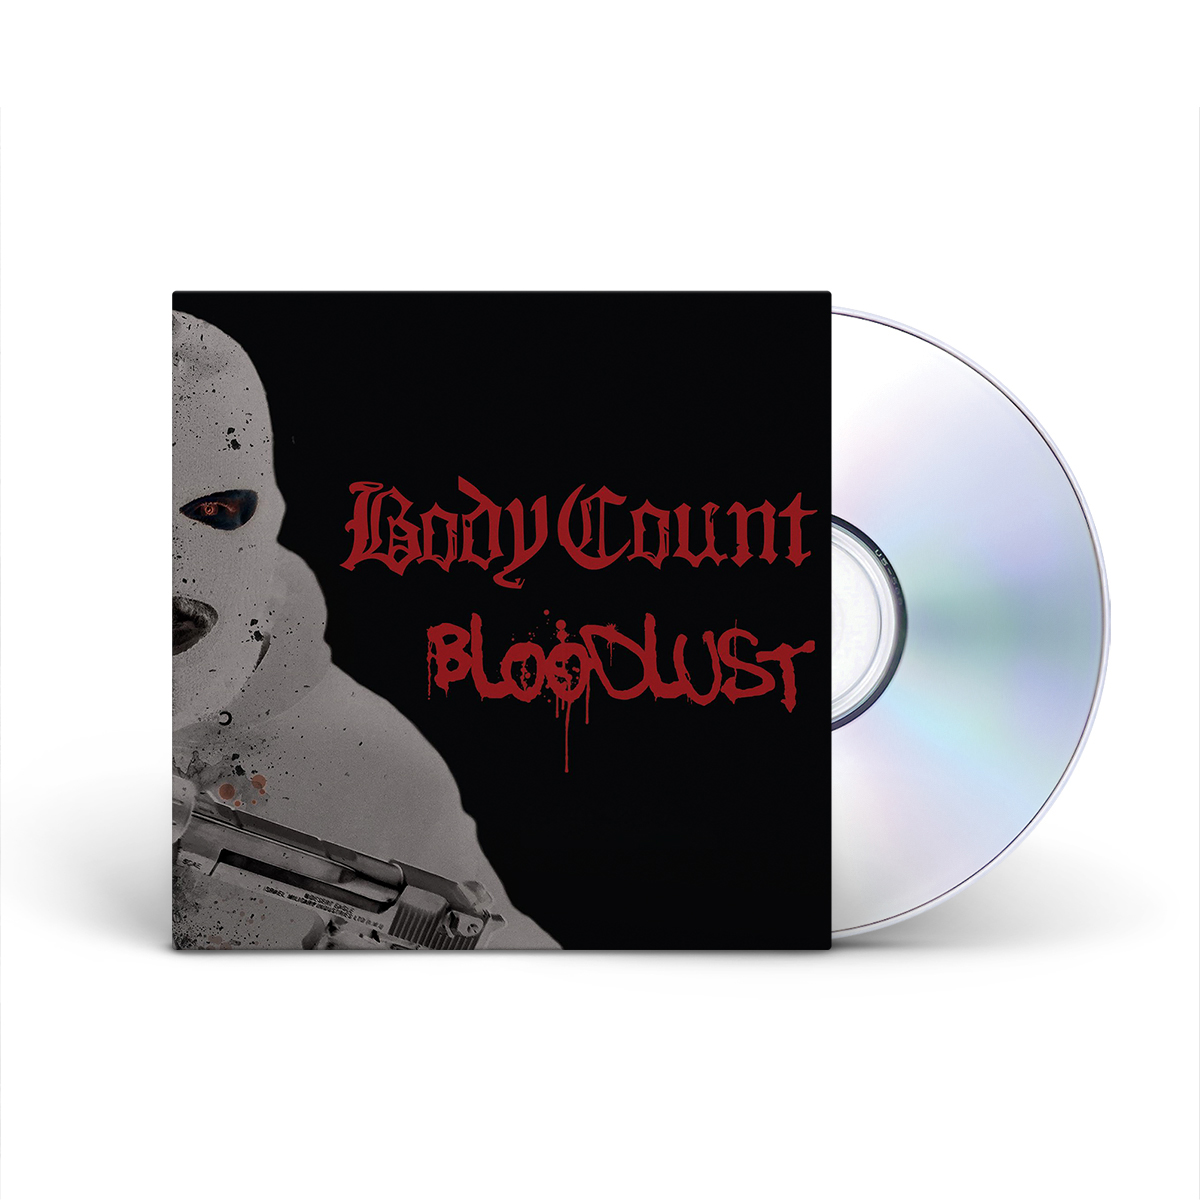 Body Count: Bloodlust CD